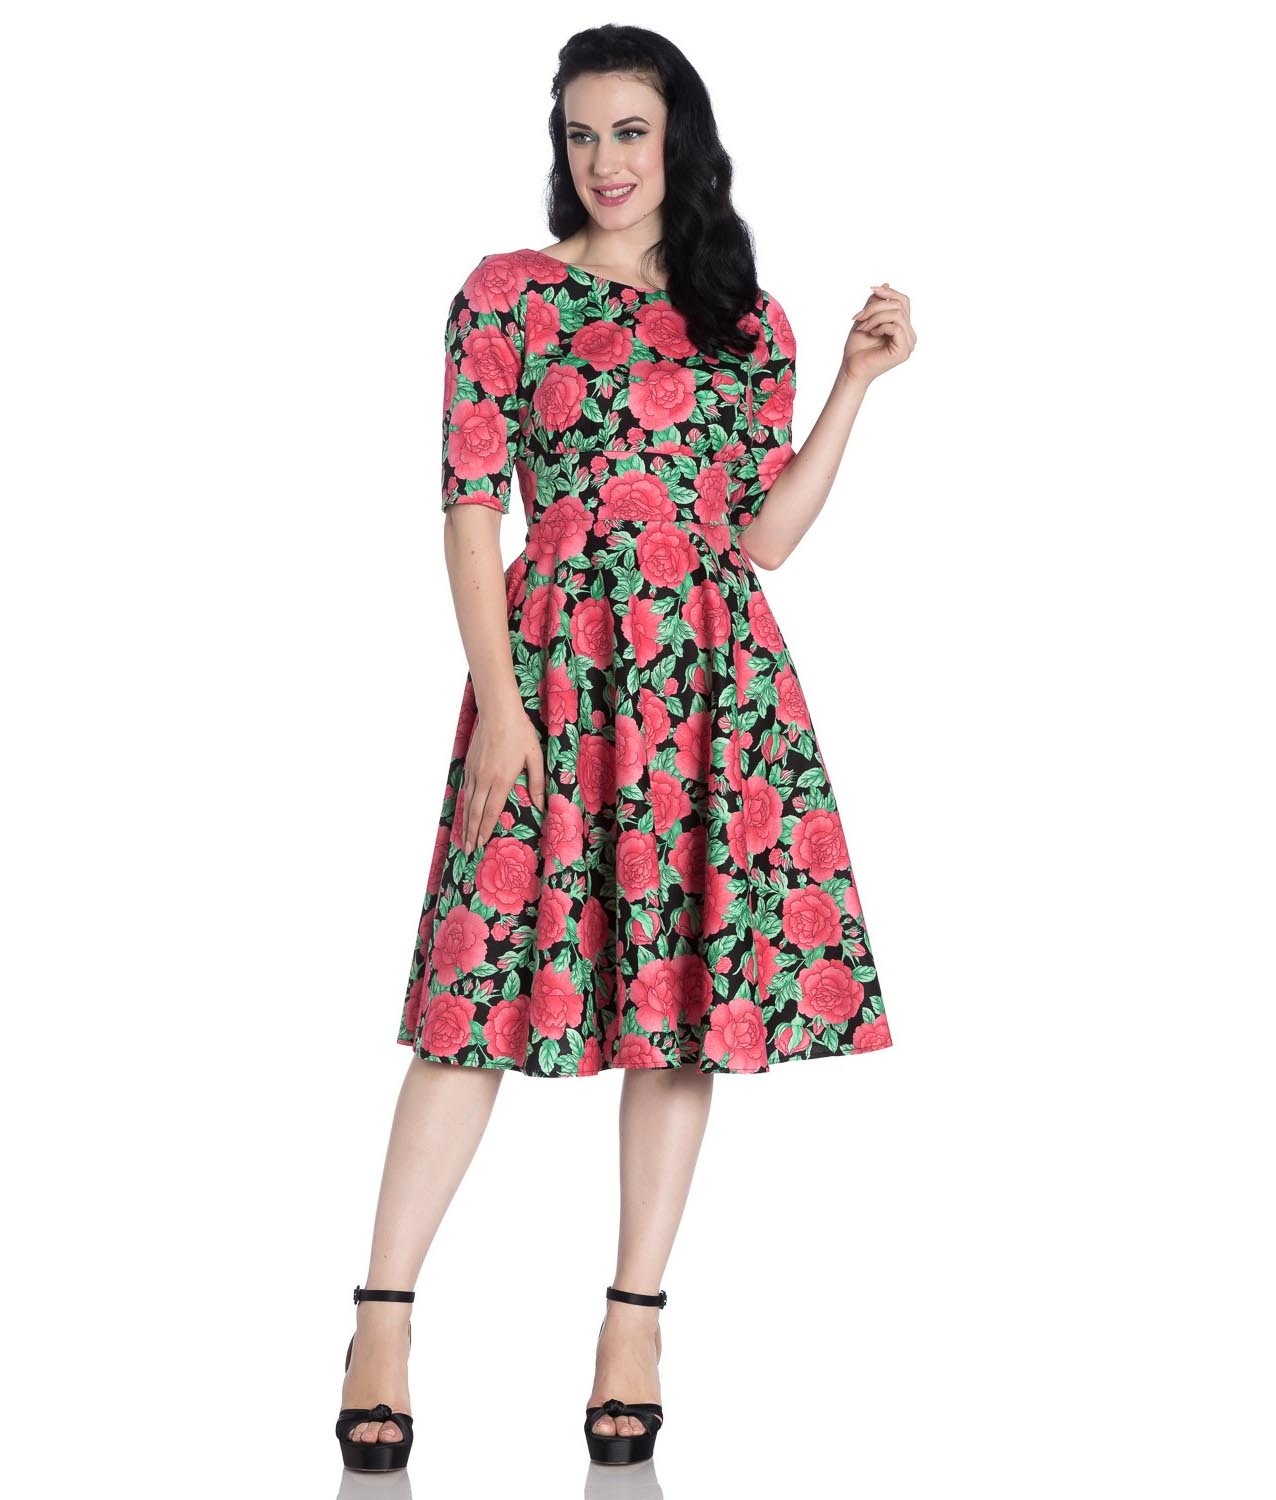 Hell-Bunny-40s-50s-Black-Pin-Up-Vintage-Dress-DARCY-Pink-Roses-All-Sizes thumbnail 11